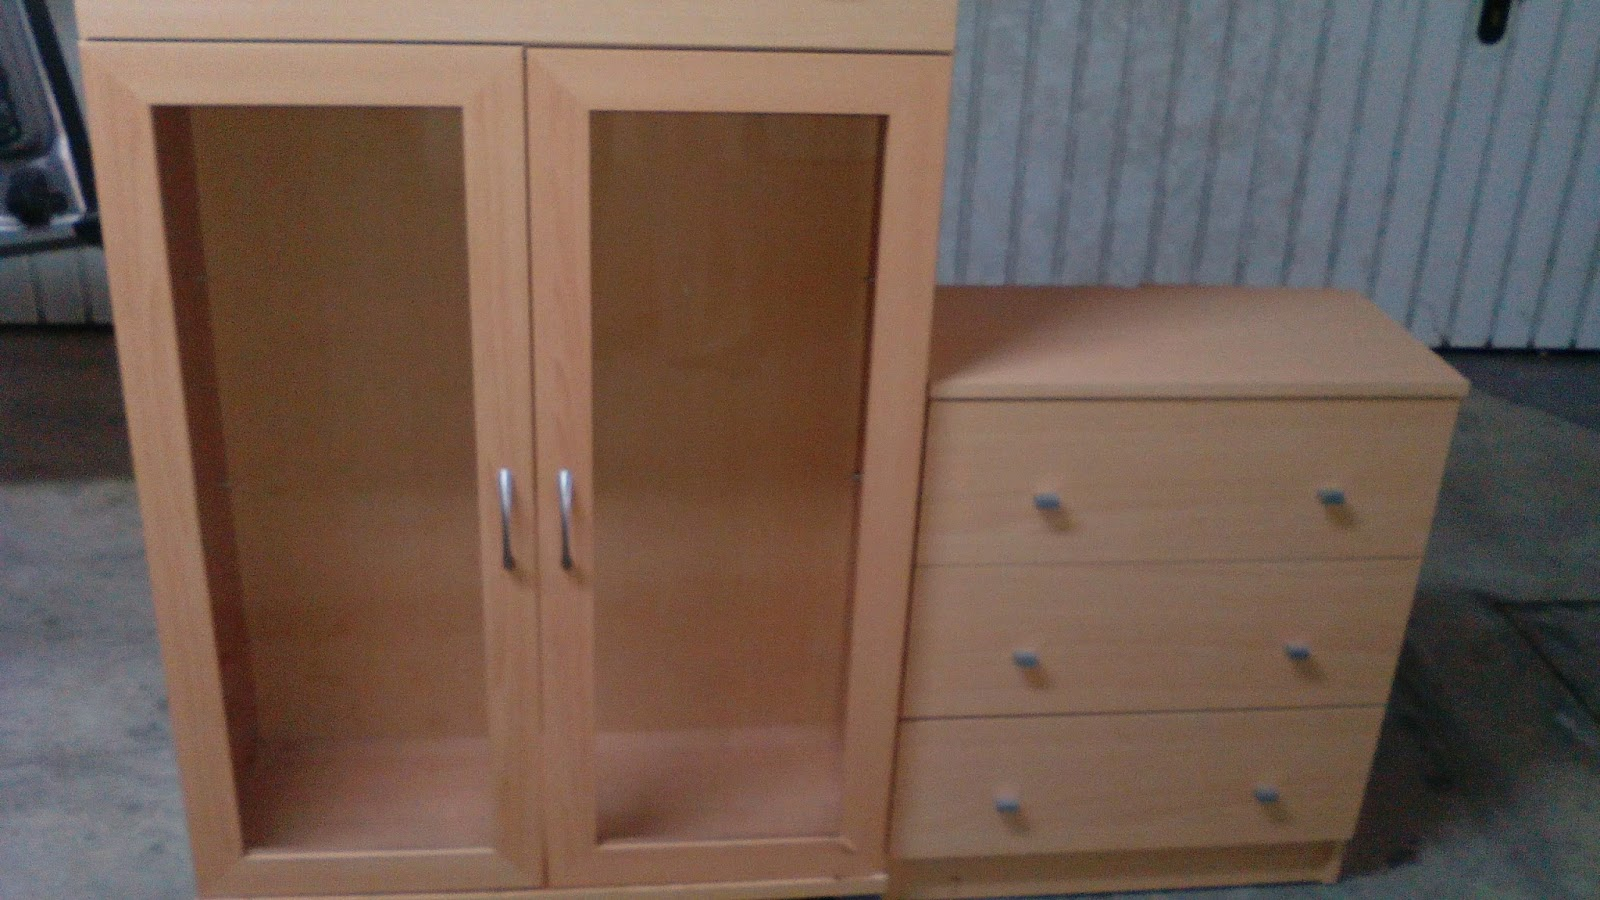 Digame for sale furniture etc for Furniture etc